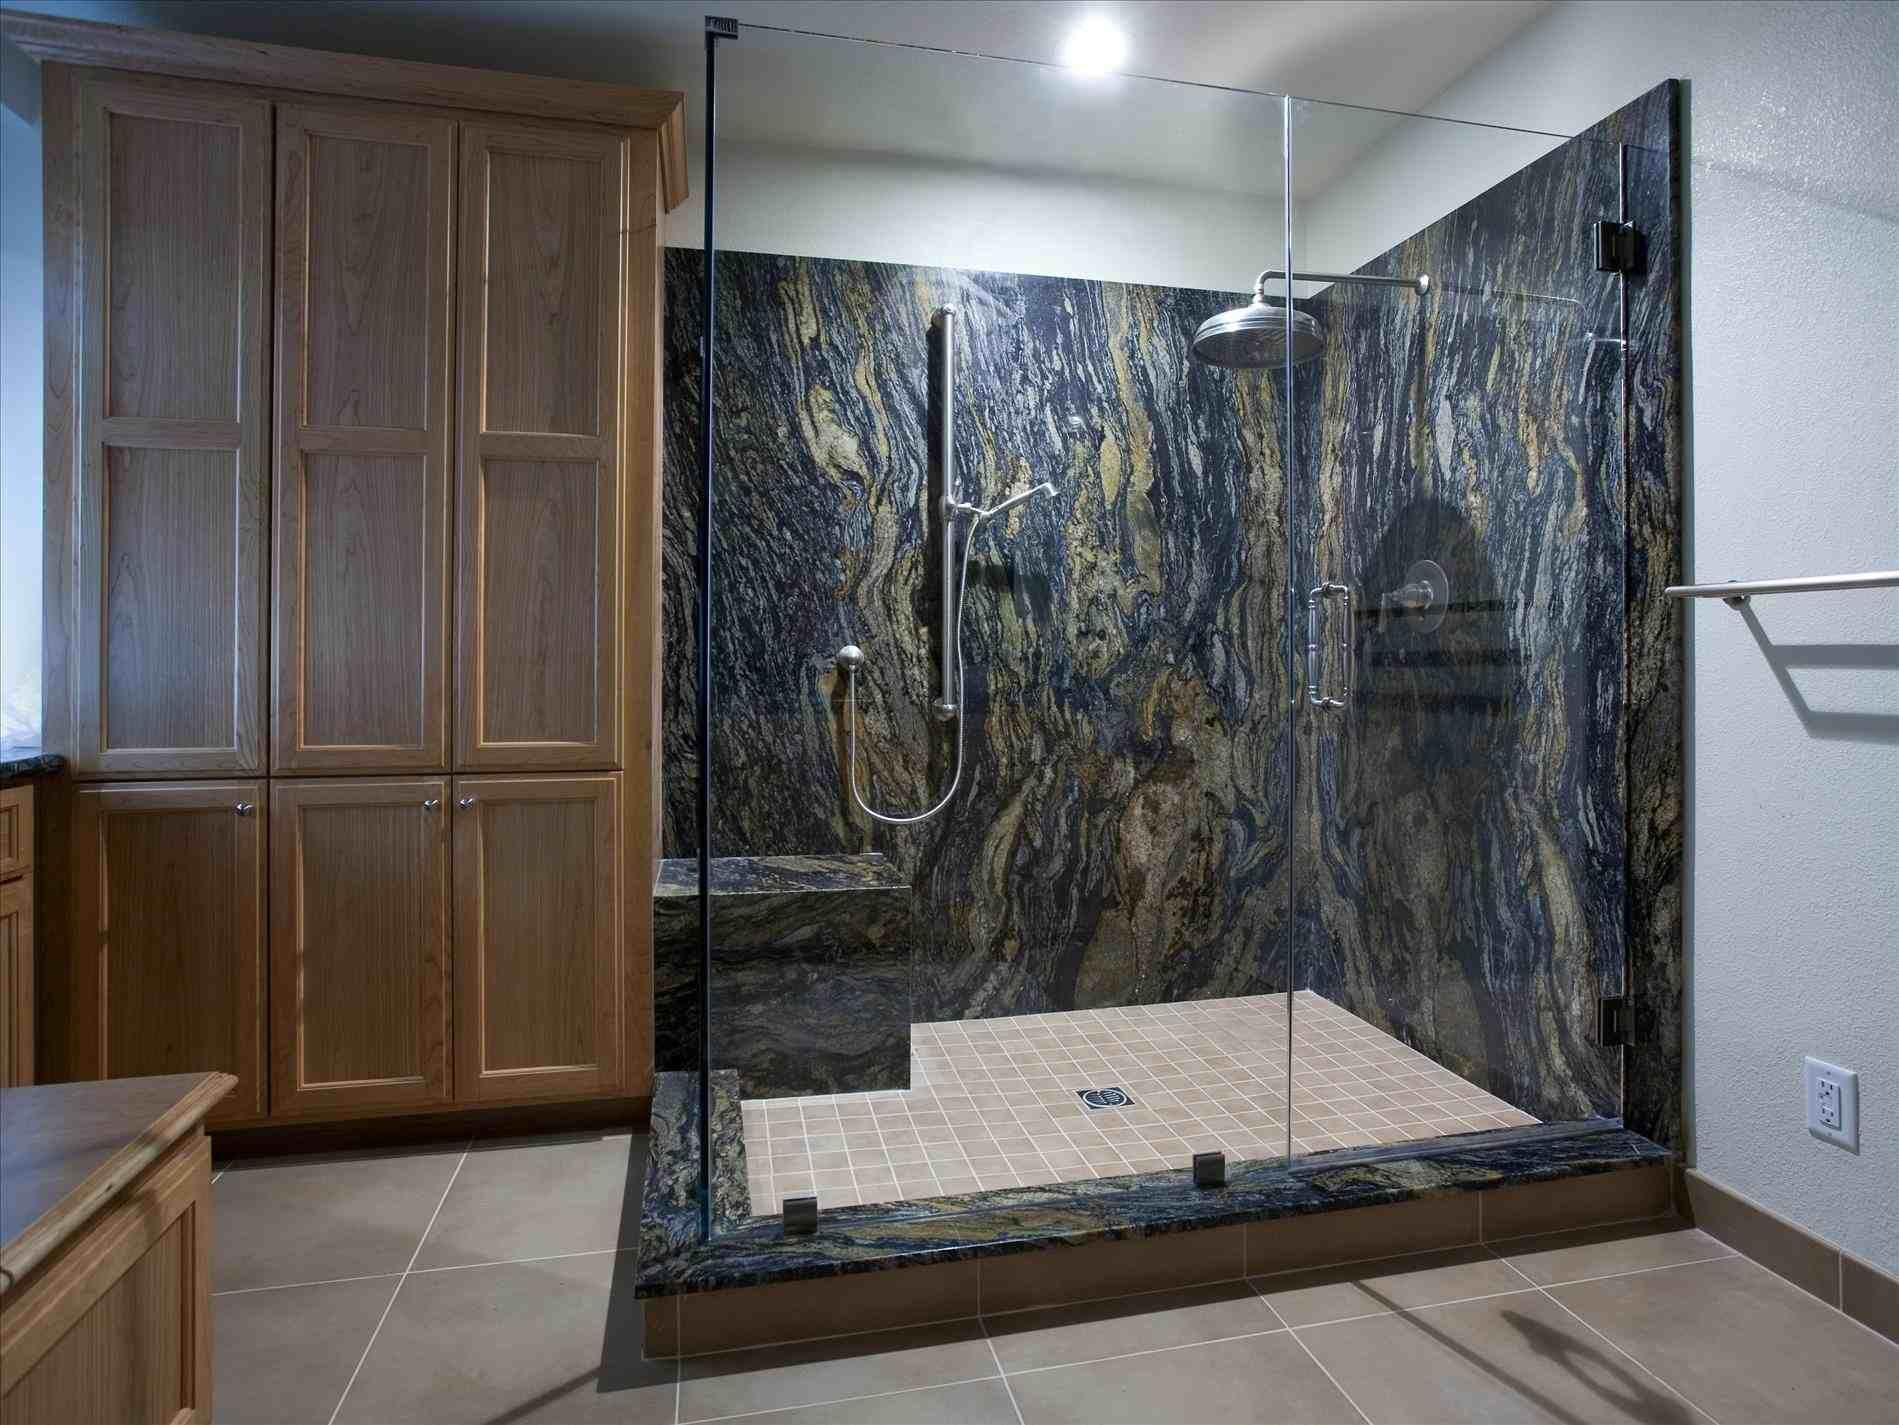 Small Bathroom Designs On A Budget Amazing This Master Bathroom Remodel Budget  Bathroom Remodeling On A Review